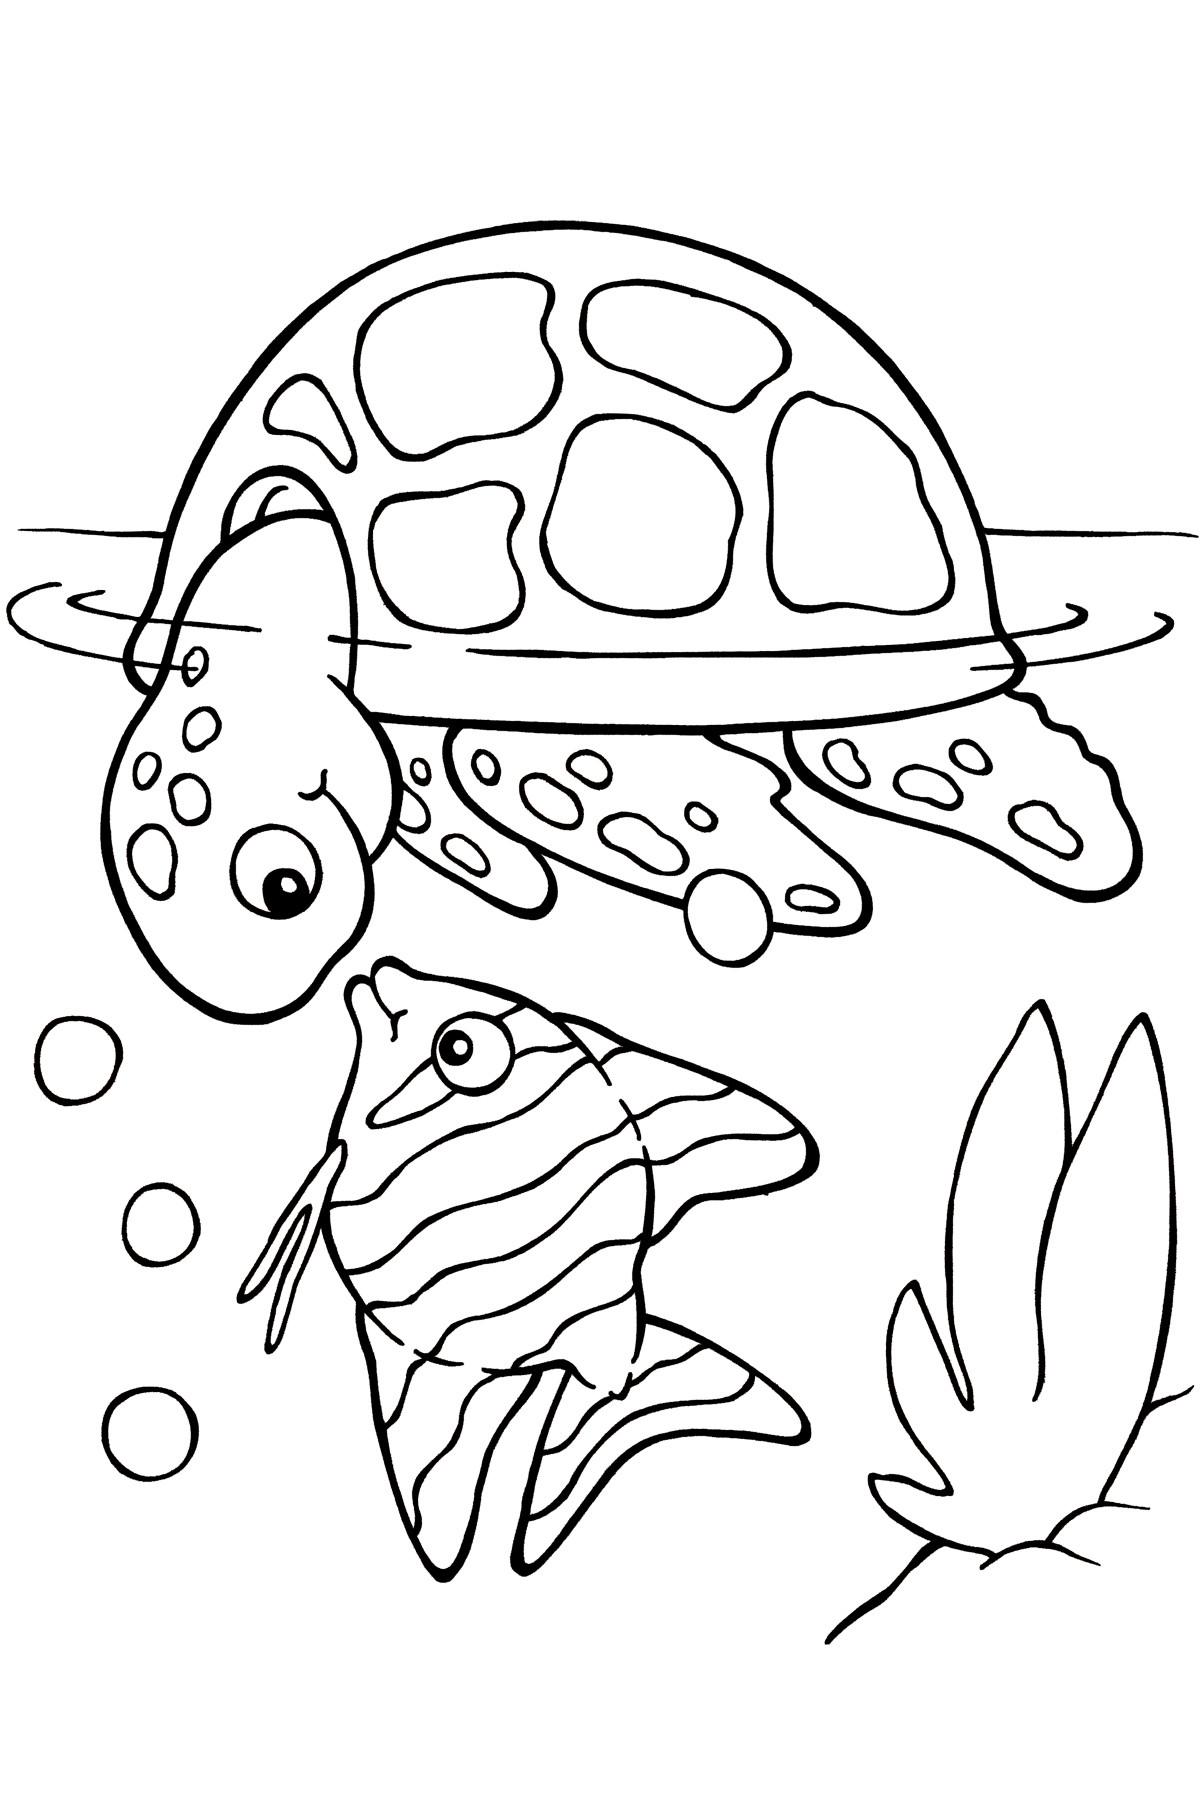 Turtles Coloring Book  Free Coloring Pages Sea World 6673 Bestofcoloring